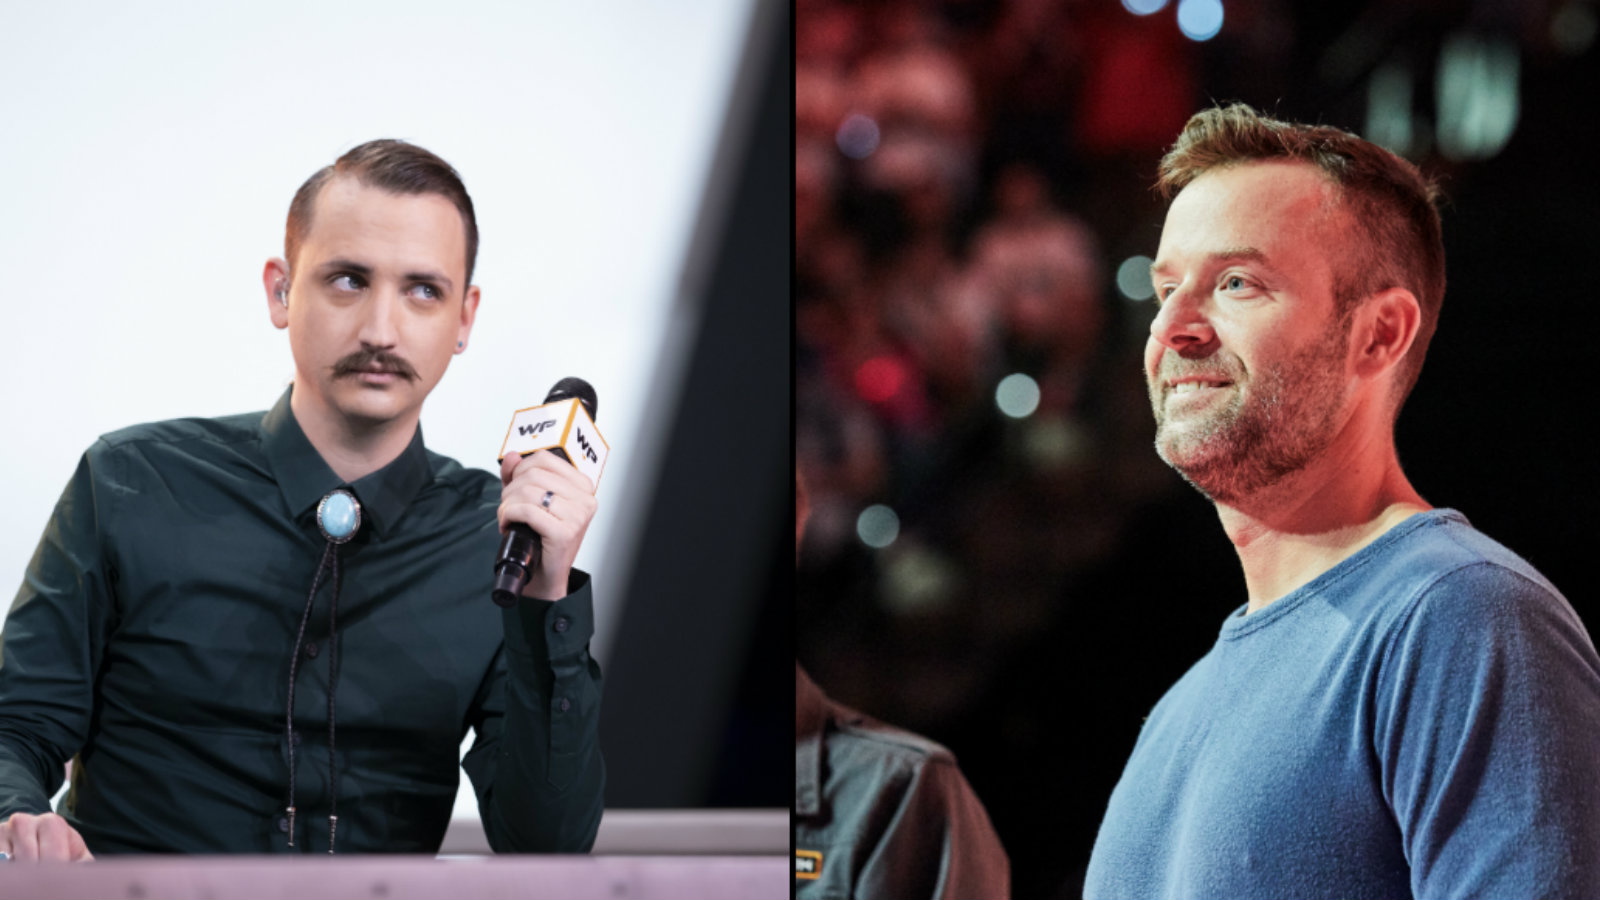 MonteCristo calls out Overwatch League commissioner Pete Vlastelica for lying in an interview with Esports Observer.